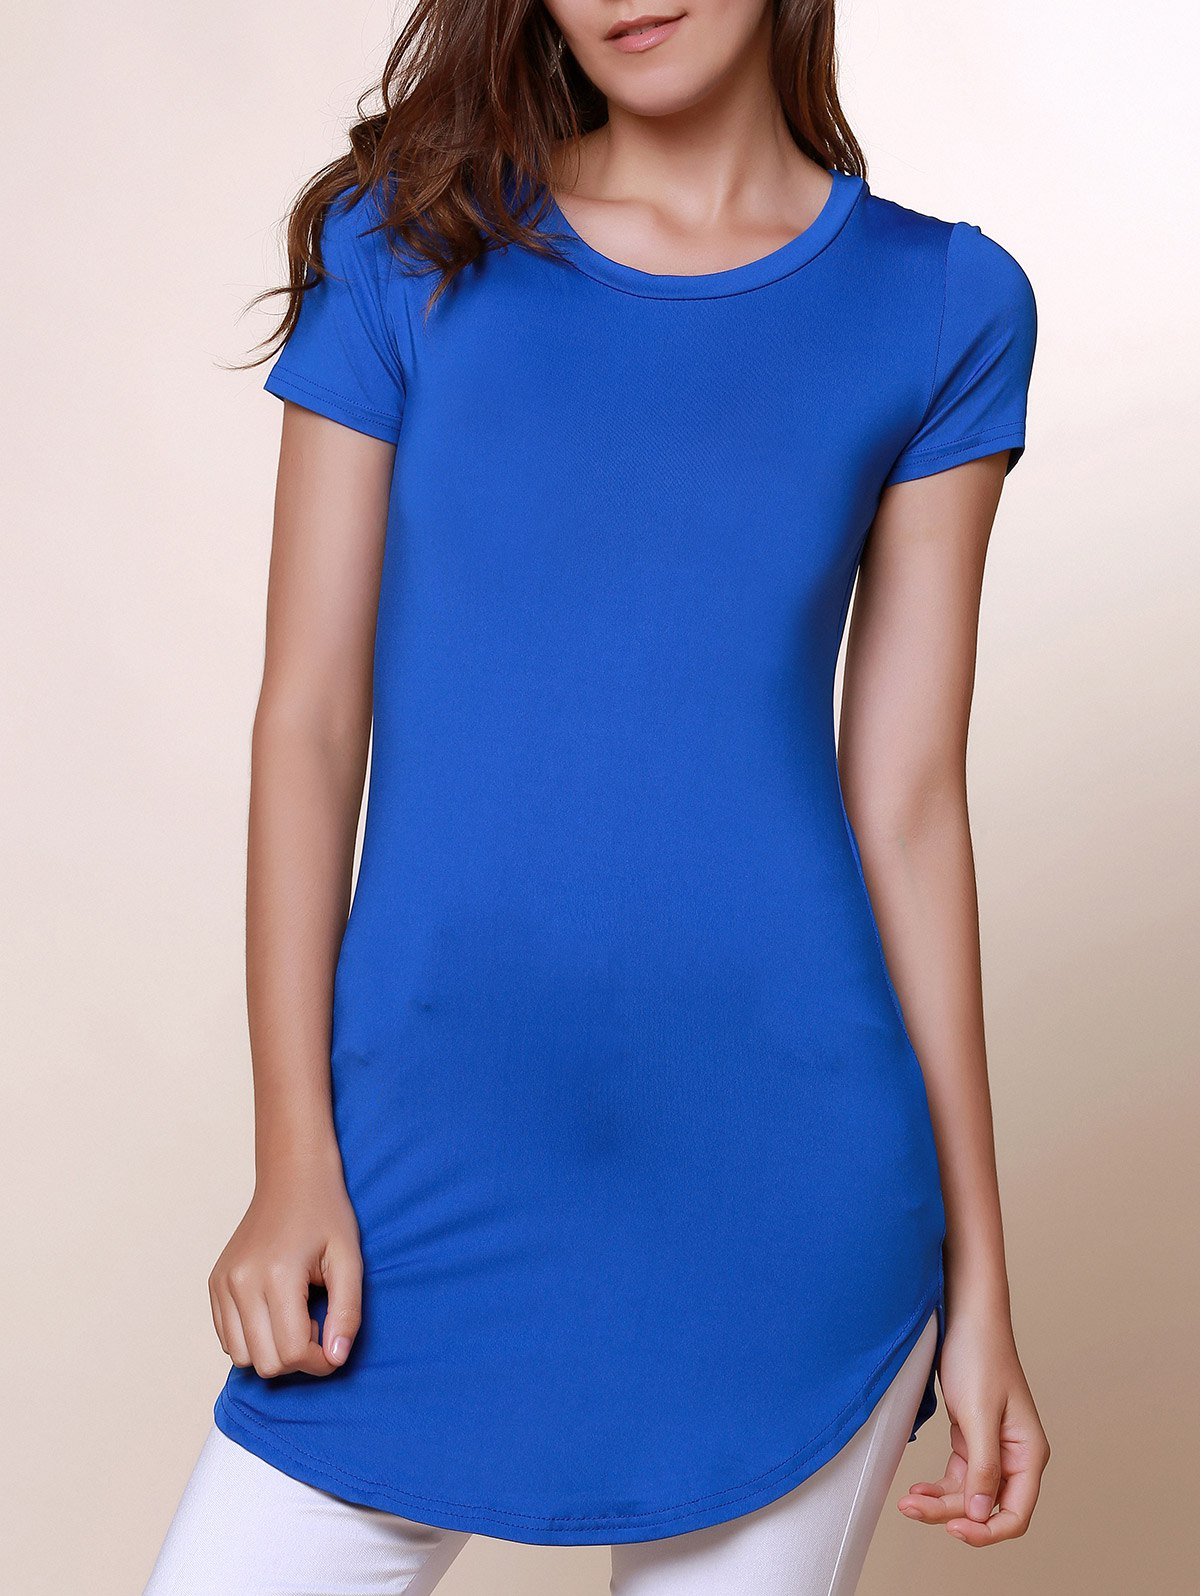 Round Neck Short Sleeve Solid Color Asymmetrical T Shirt 134136601